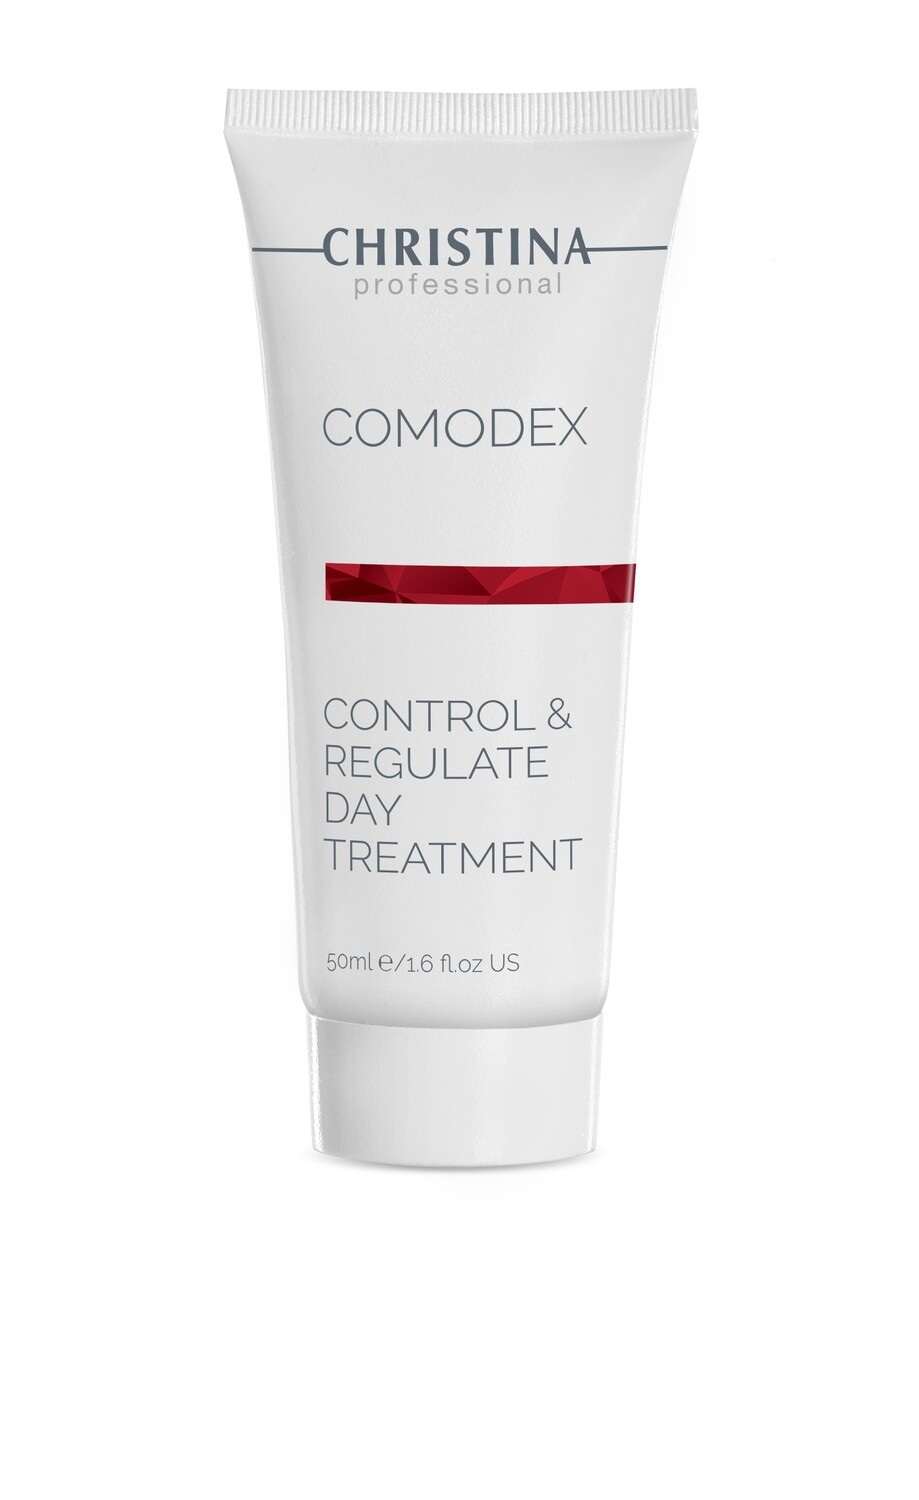 Comodex-Control&Regulate Day Treatment 50